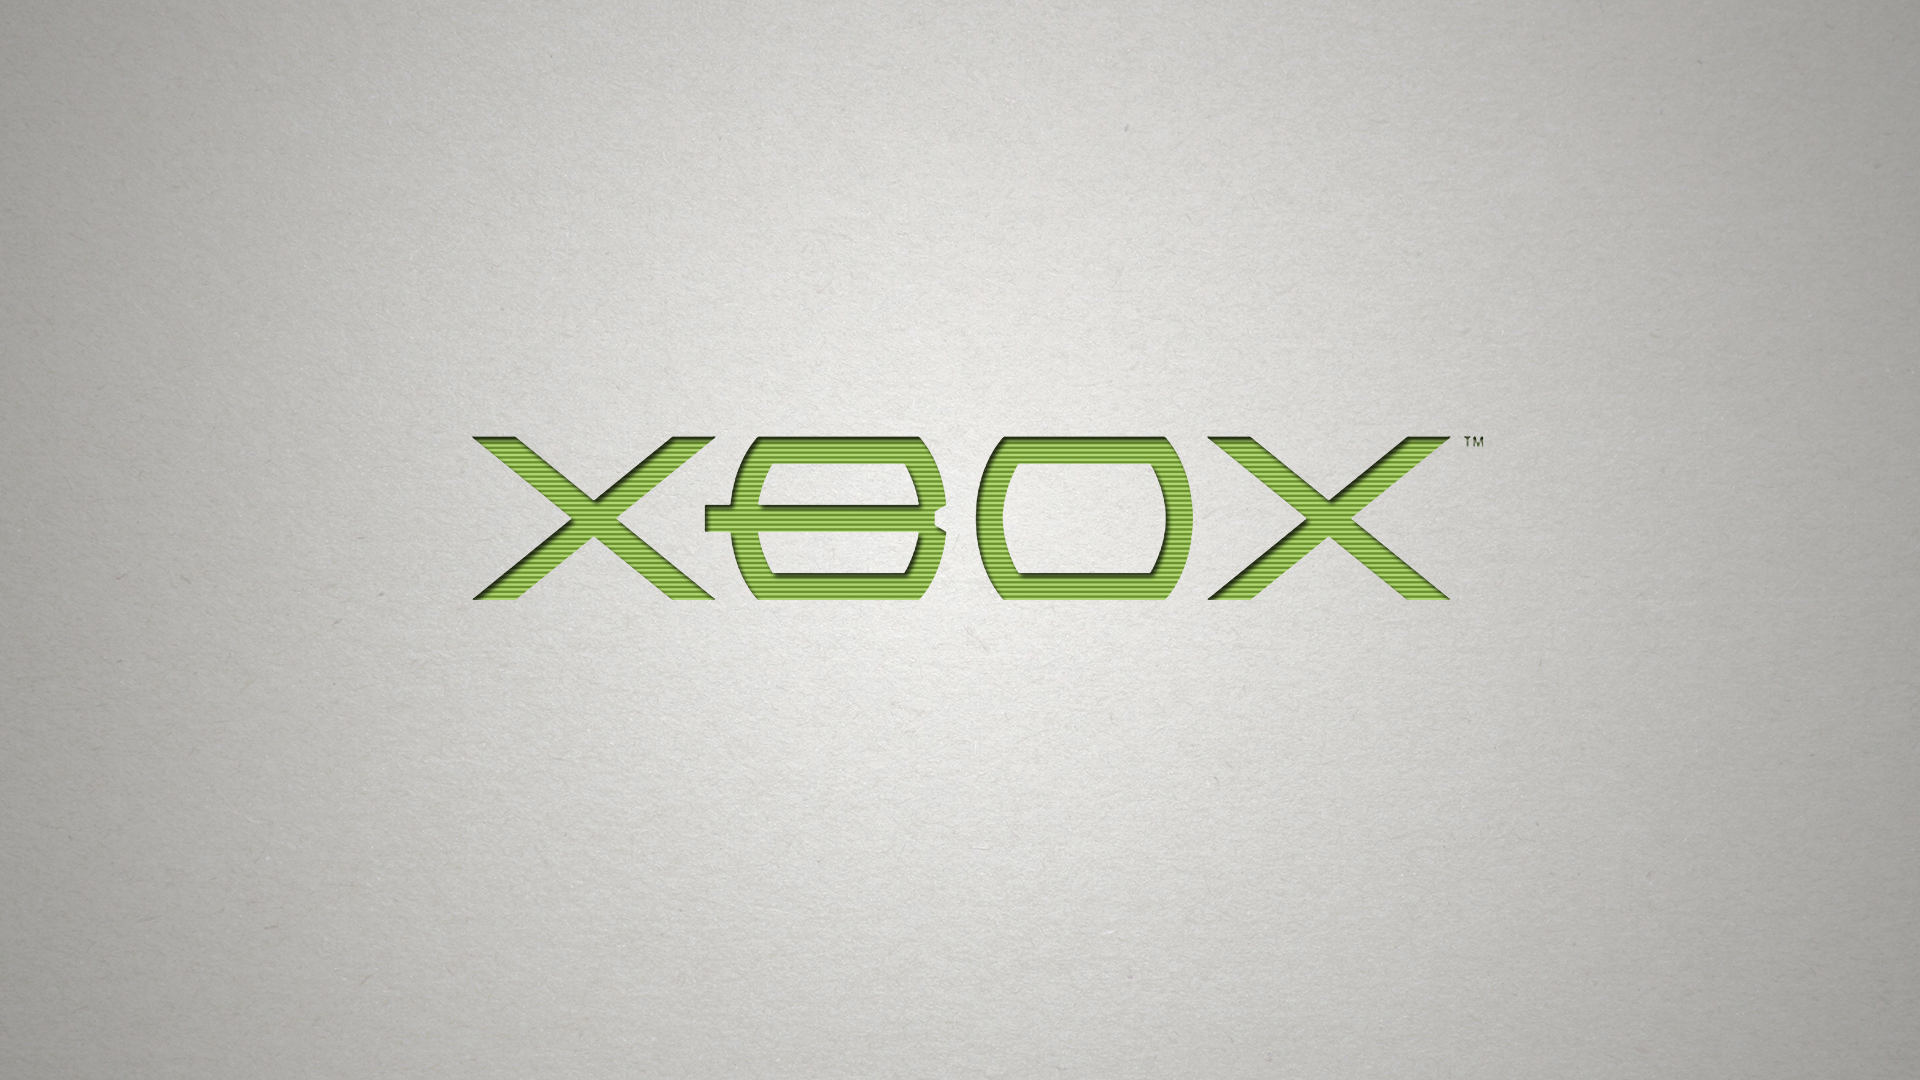 Download Xbox Logo Wallpaper 35341 1920x1080 Px High Definition Wallpaper